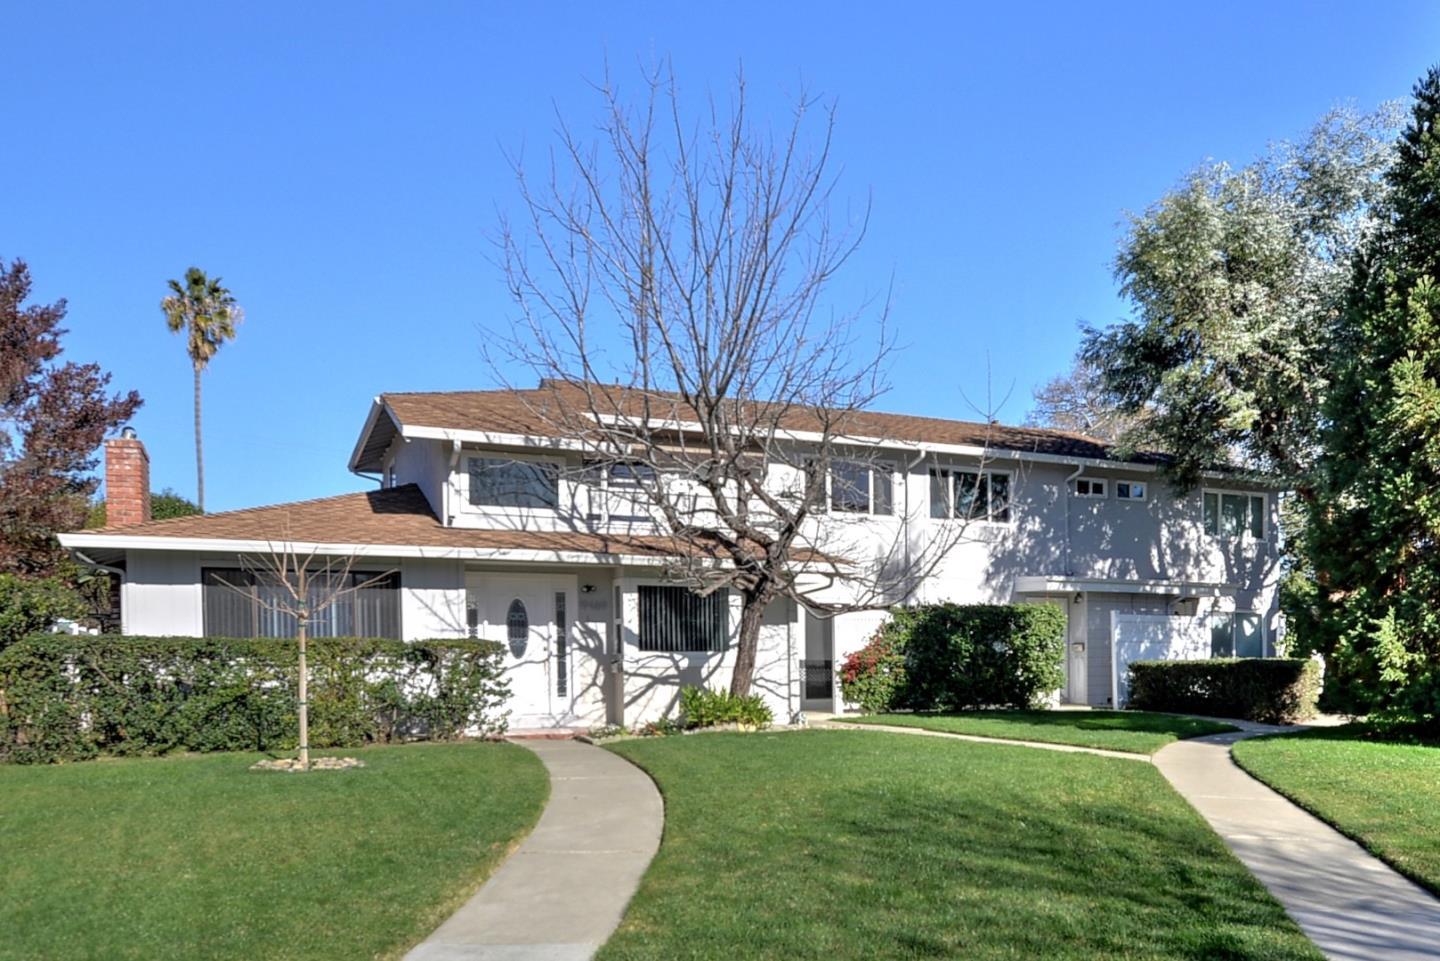 Multi-Family Home for Sale at 19469 Rosemarie Place 19469 Rosemarie Place Cupertino, California 95014 United States